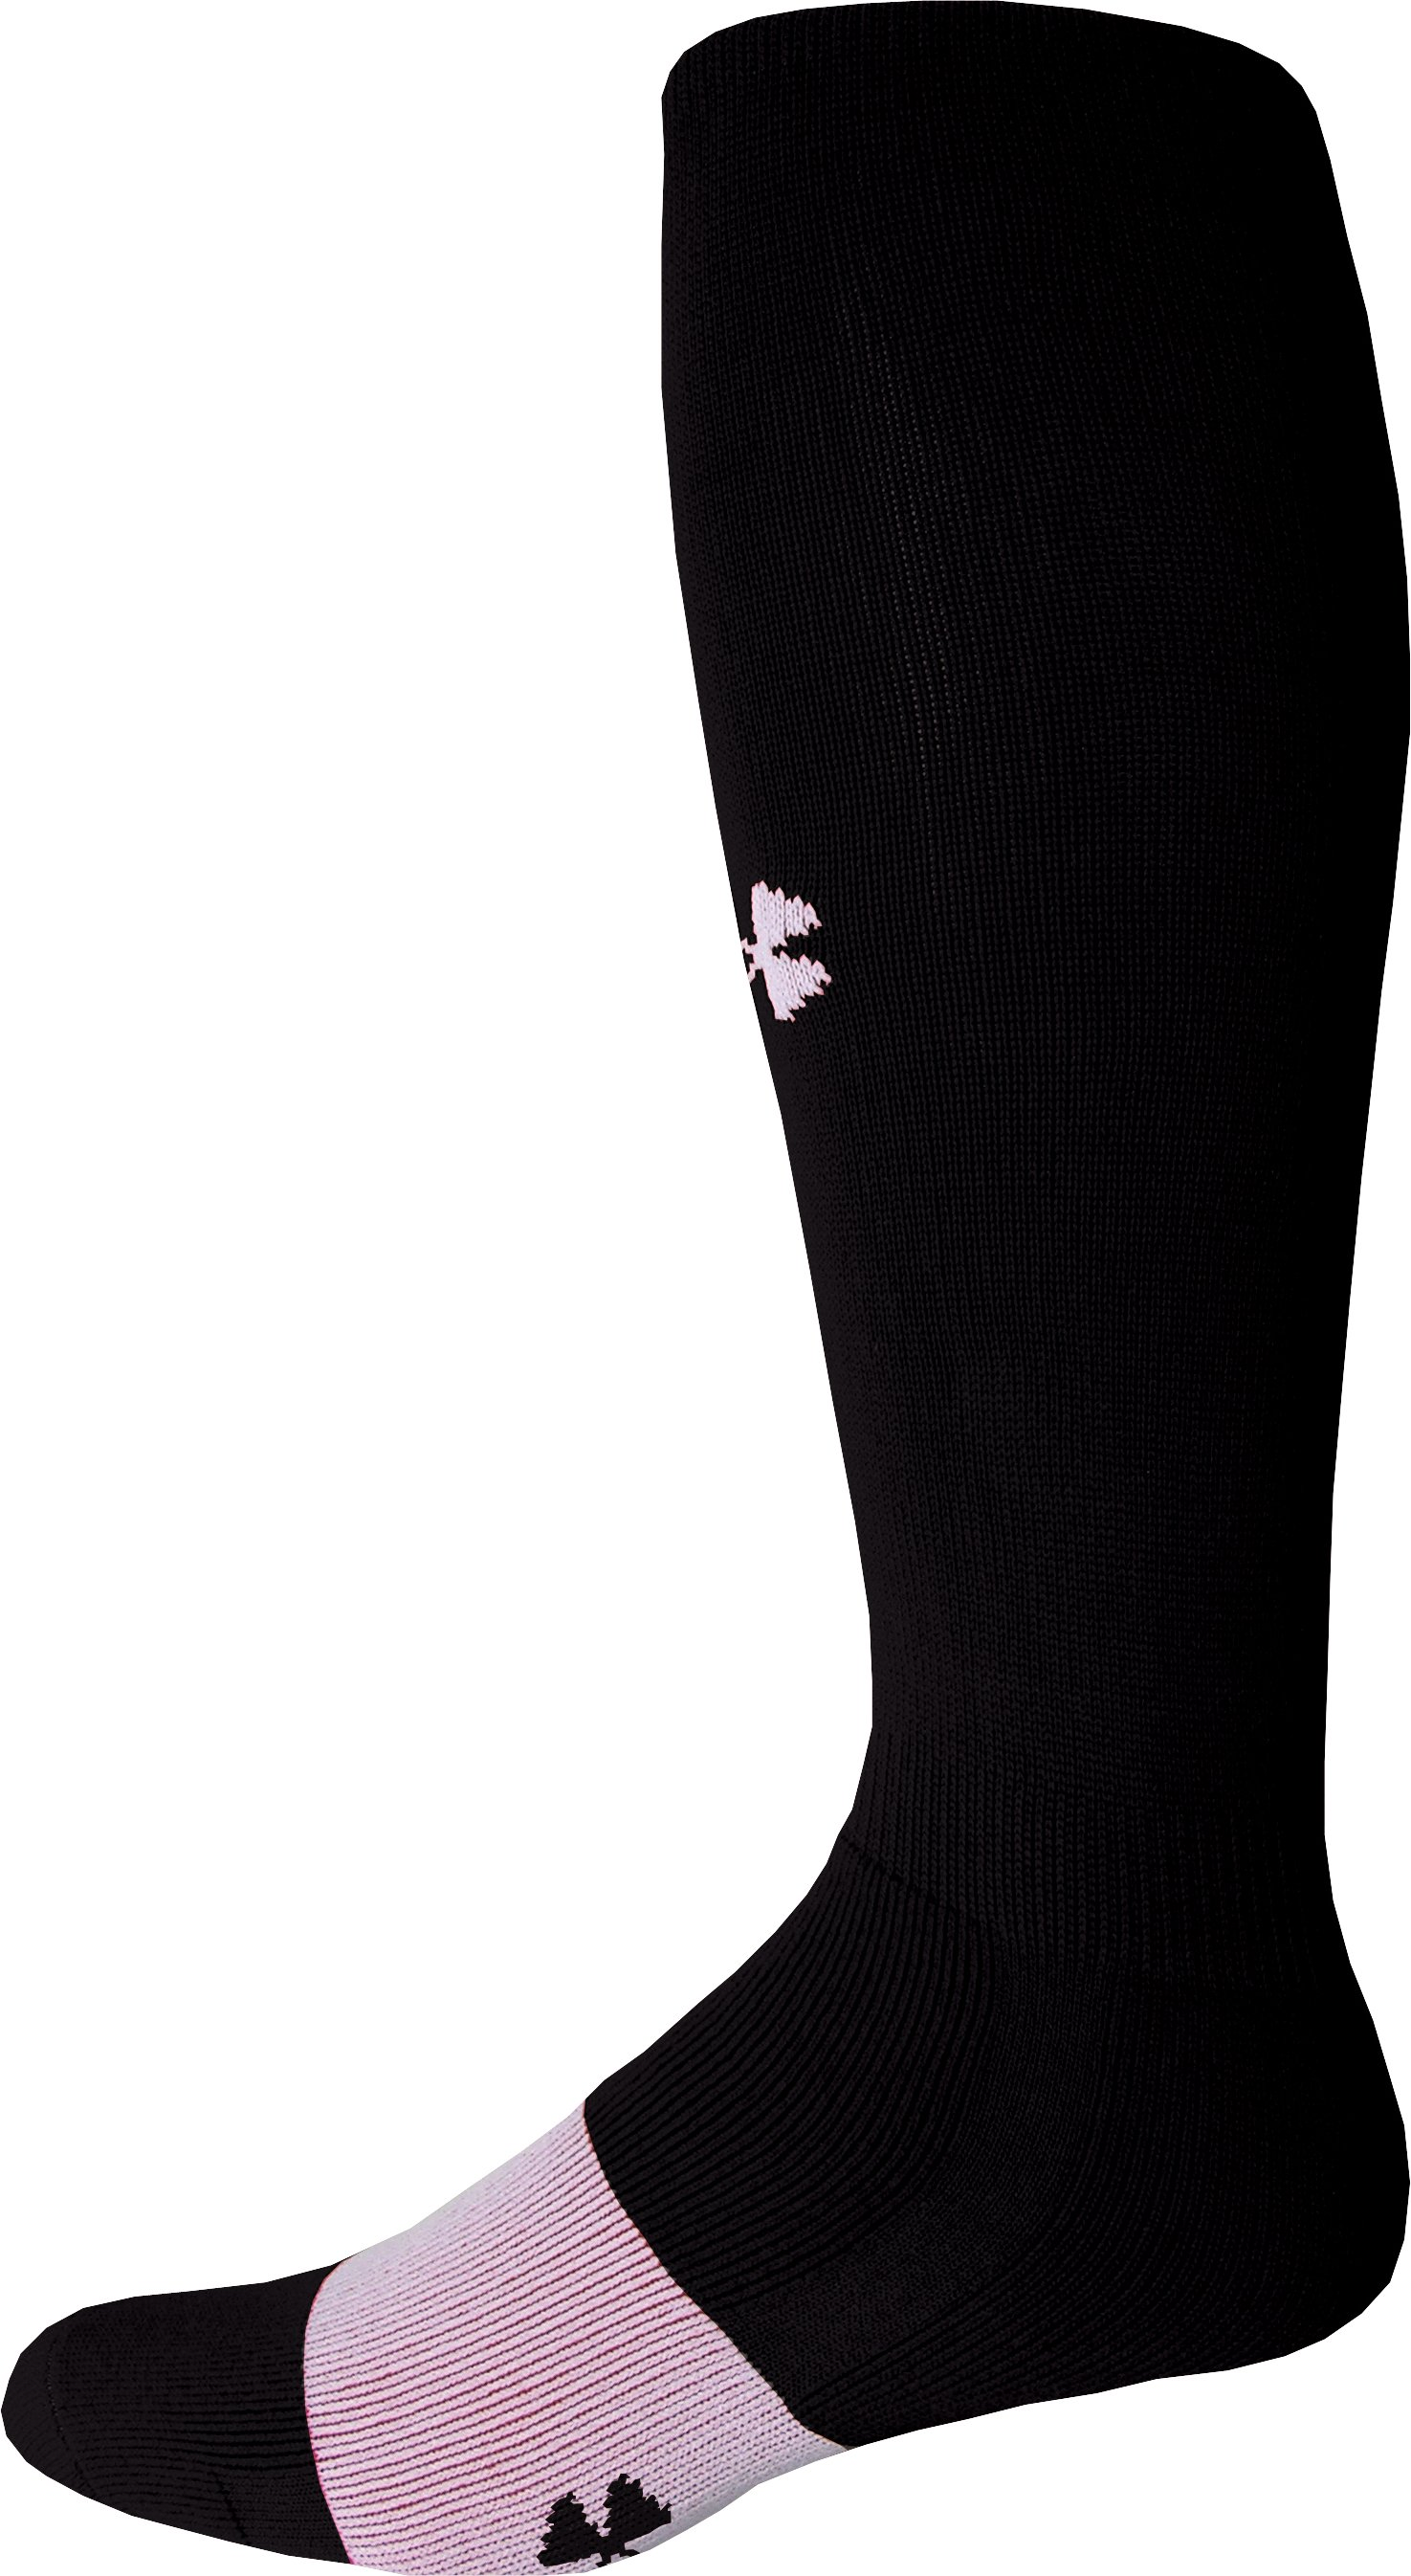 Men's Football Sock, Black , zoomed image